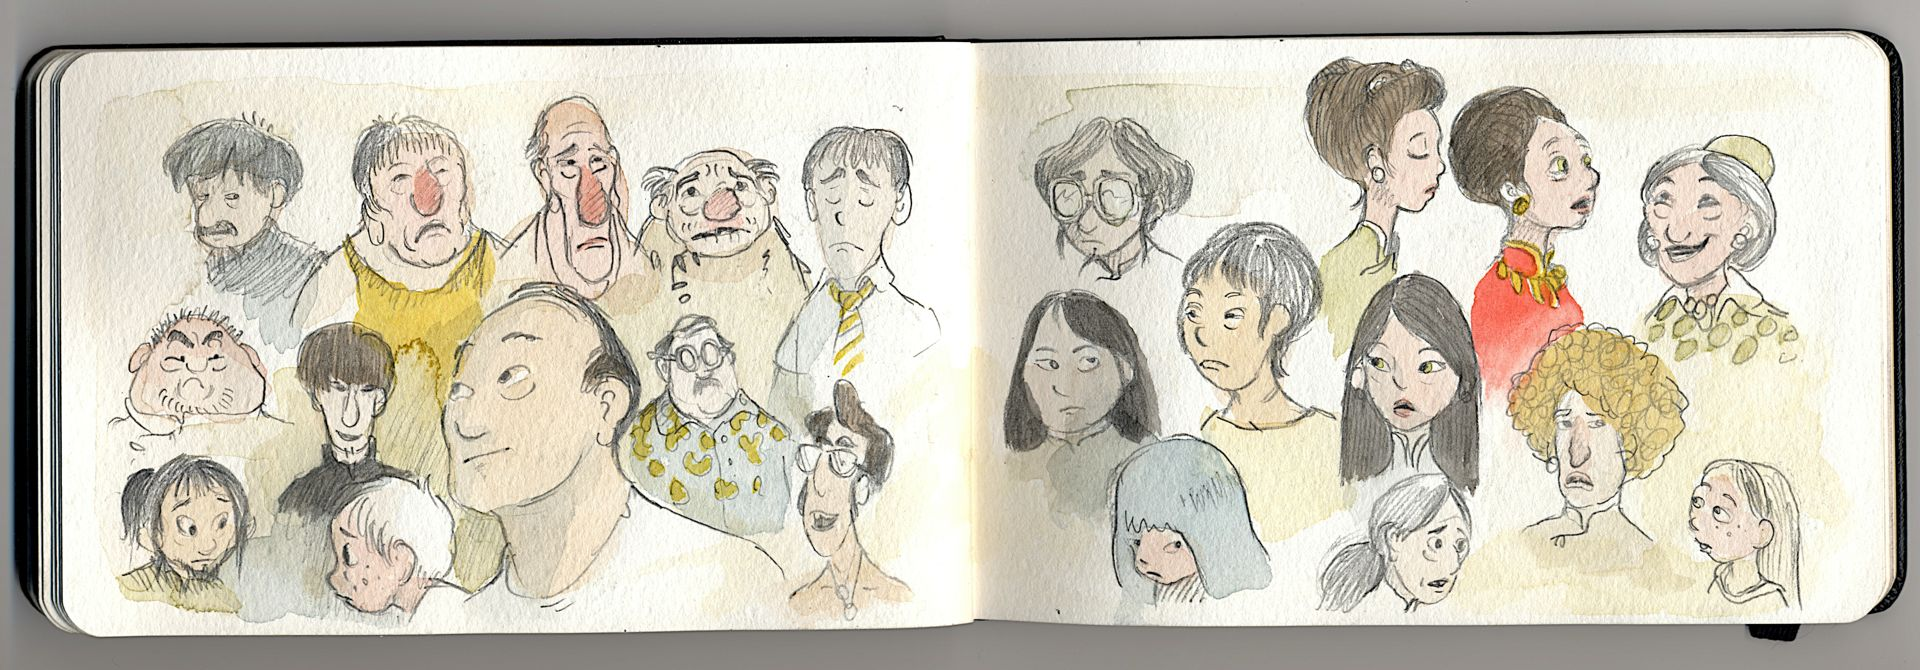 character doodles and explorations.